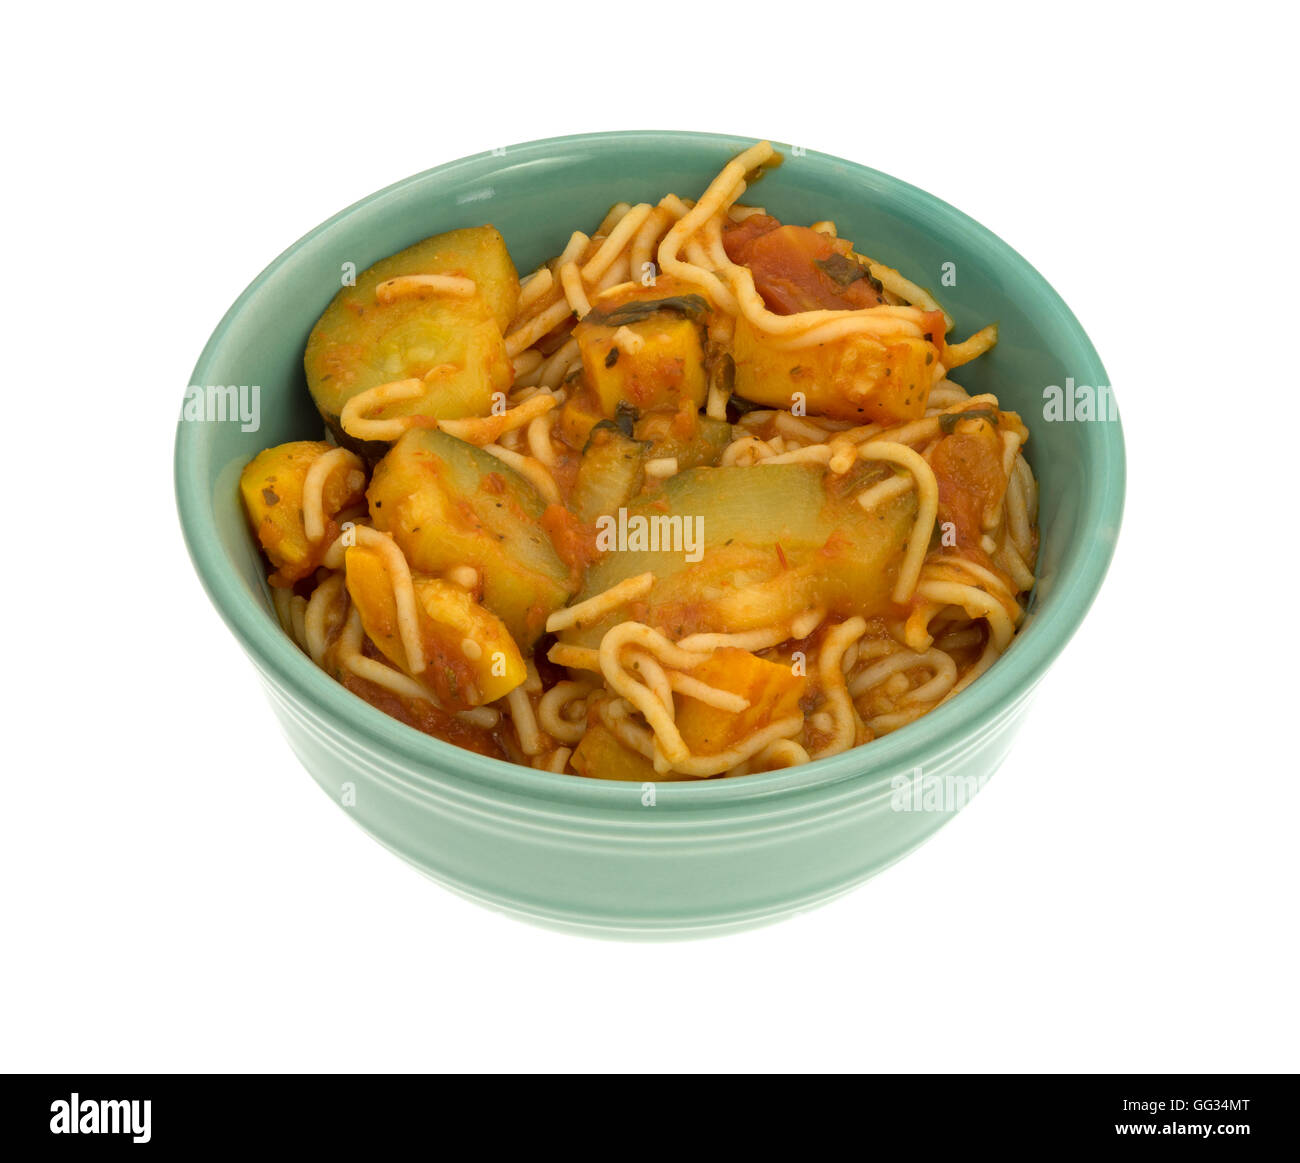 TV dinner of angel hair pasta with zucchini and spinach in a small green bowl on a white background. - Stock Image